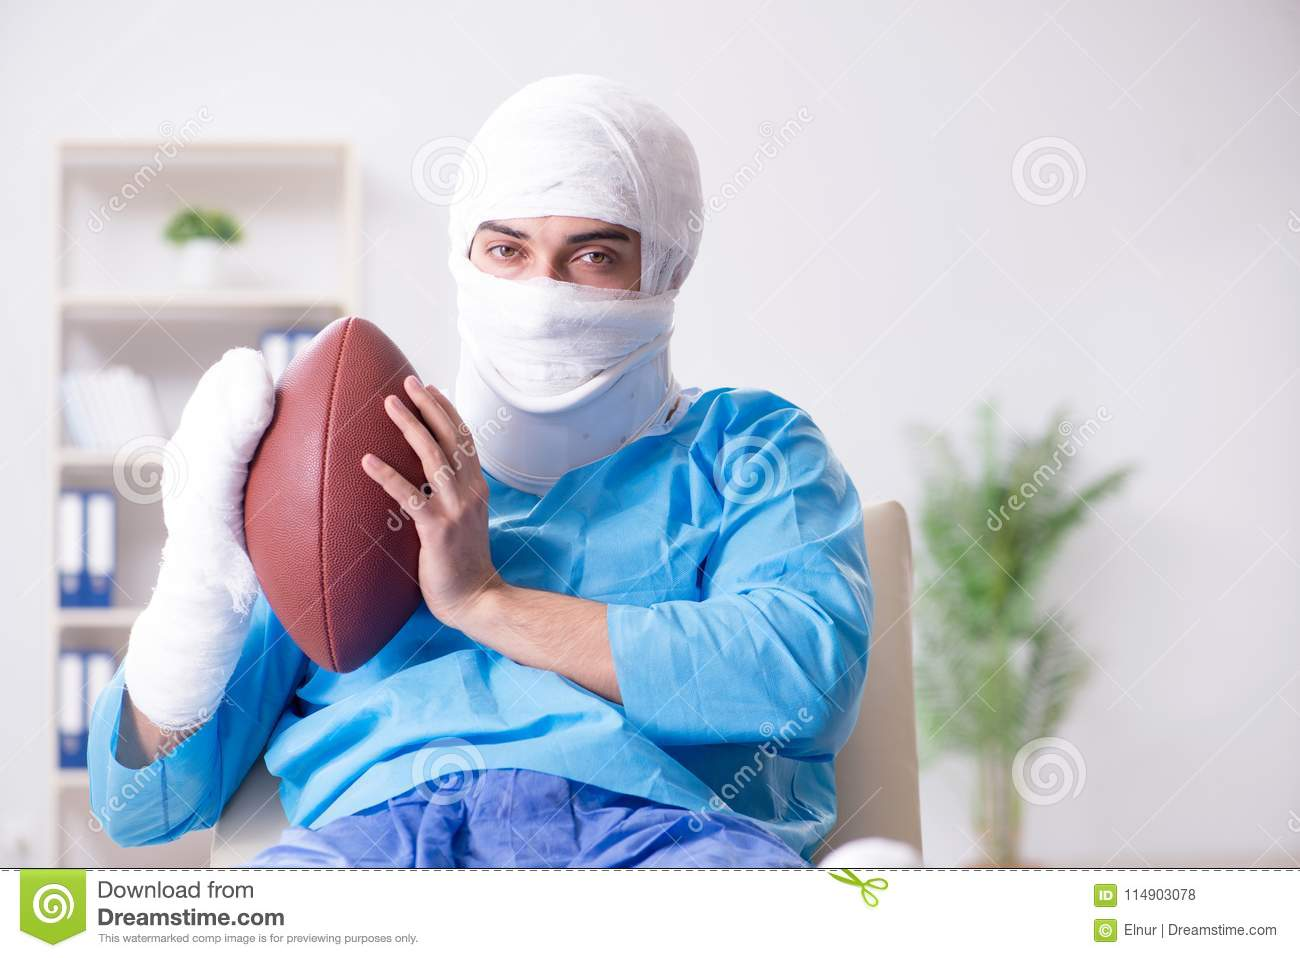 The injured american football player recovering in hospital